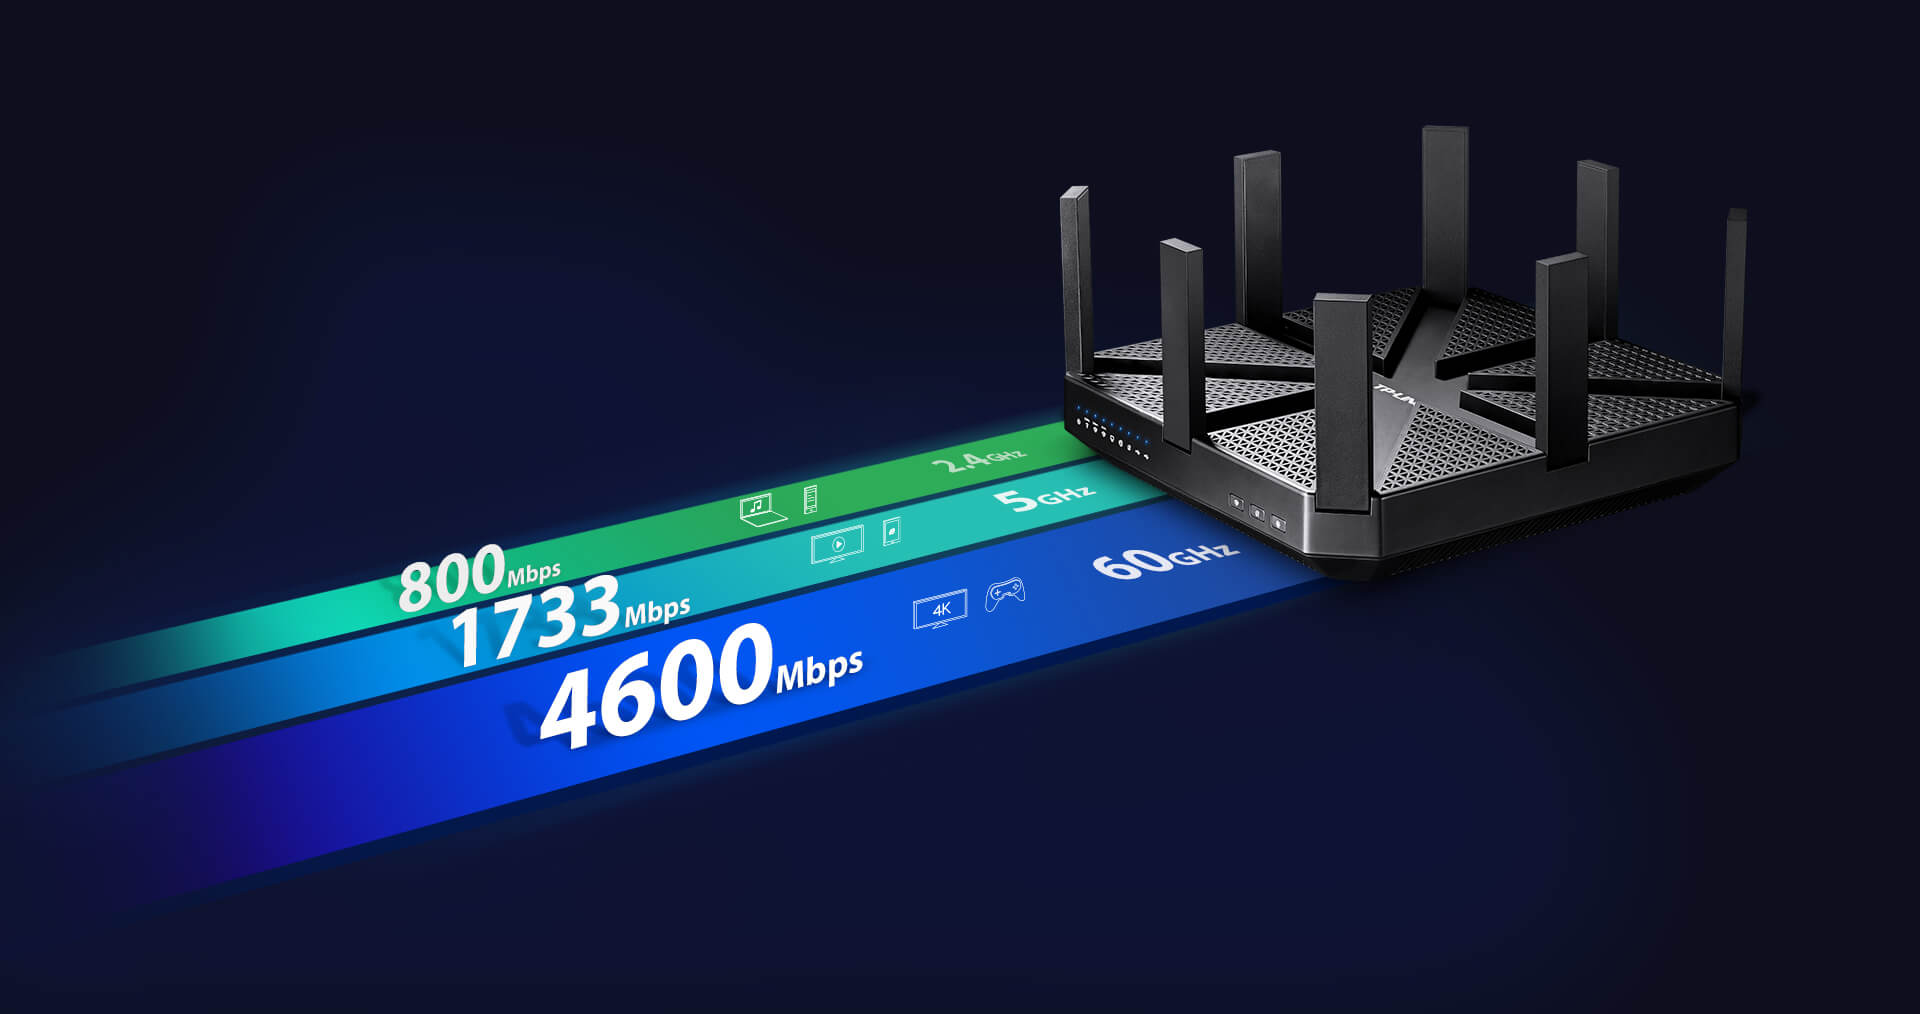 Talon AD7200 - Best Wireless Router